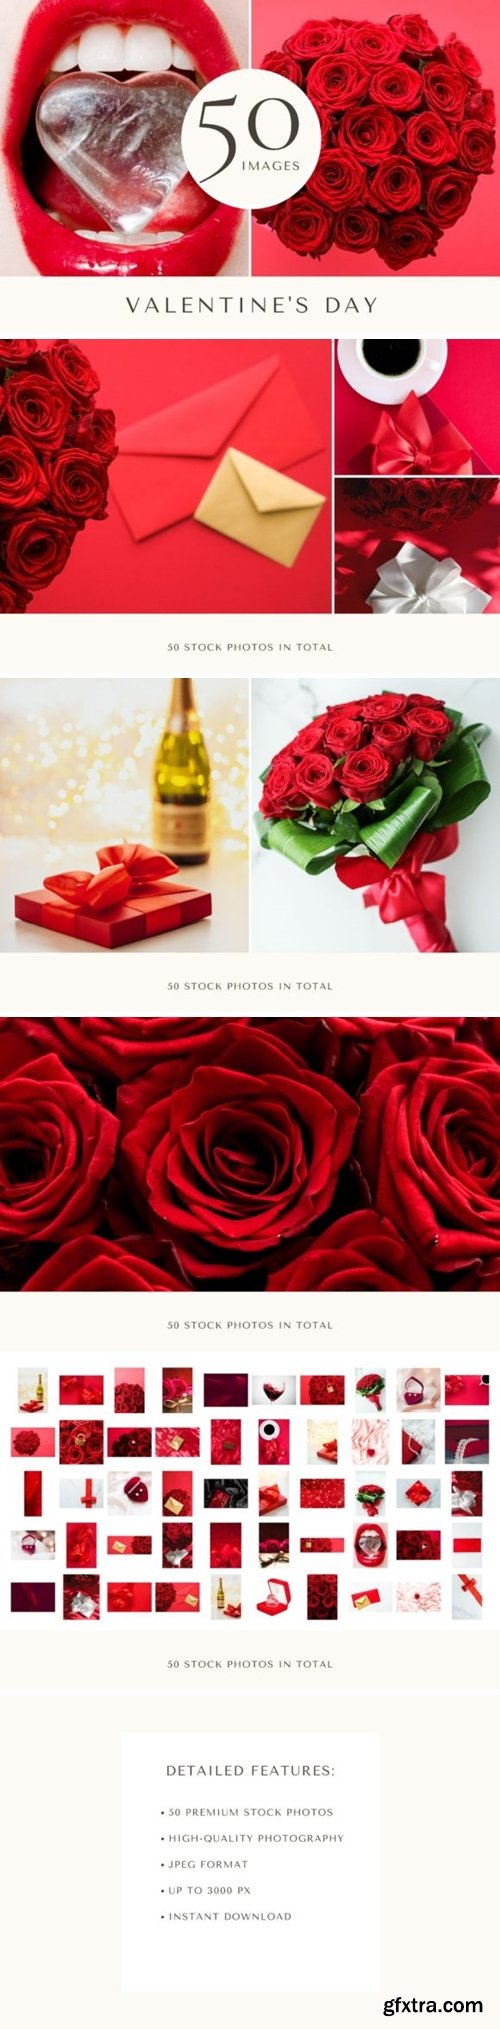 50 Images | Valentines Day Photo Bundle 8032157